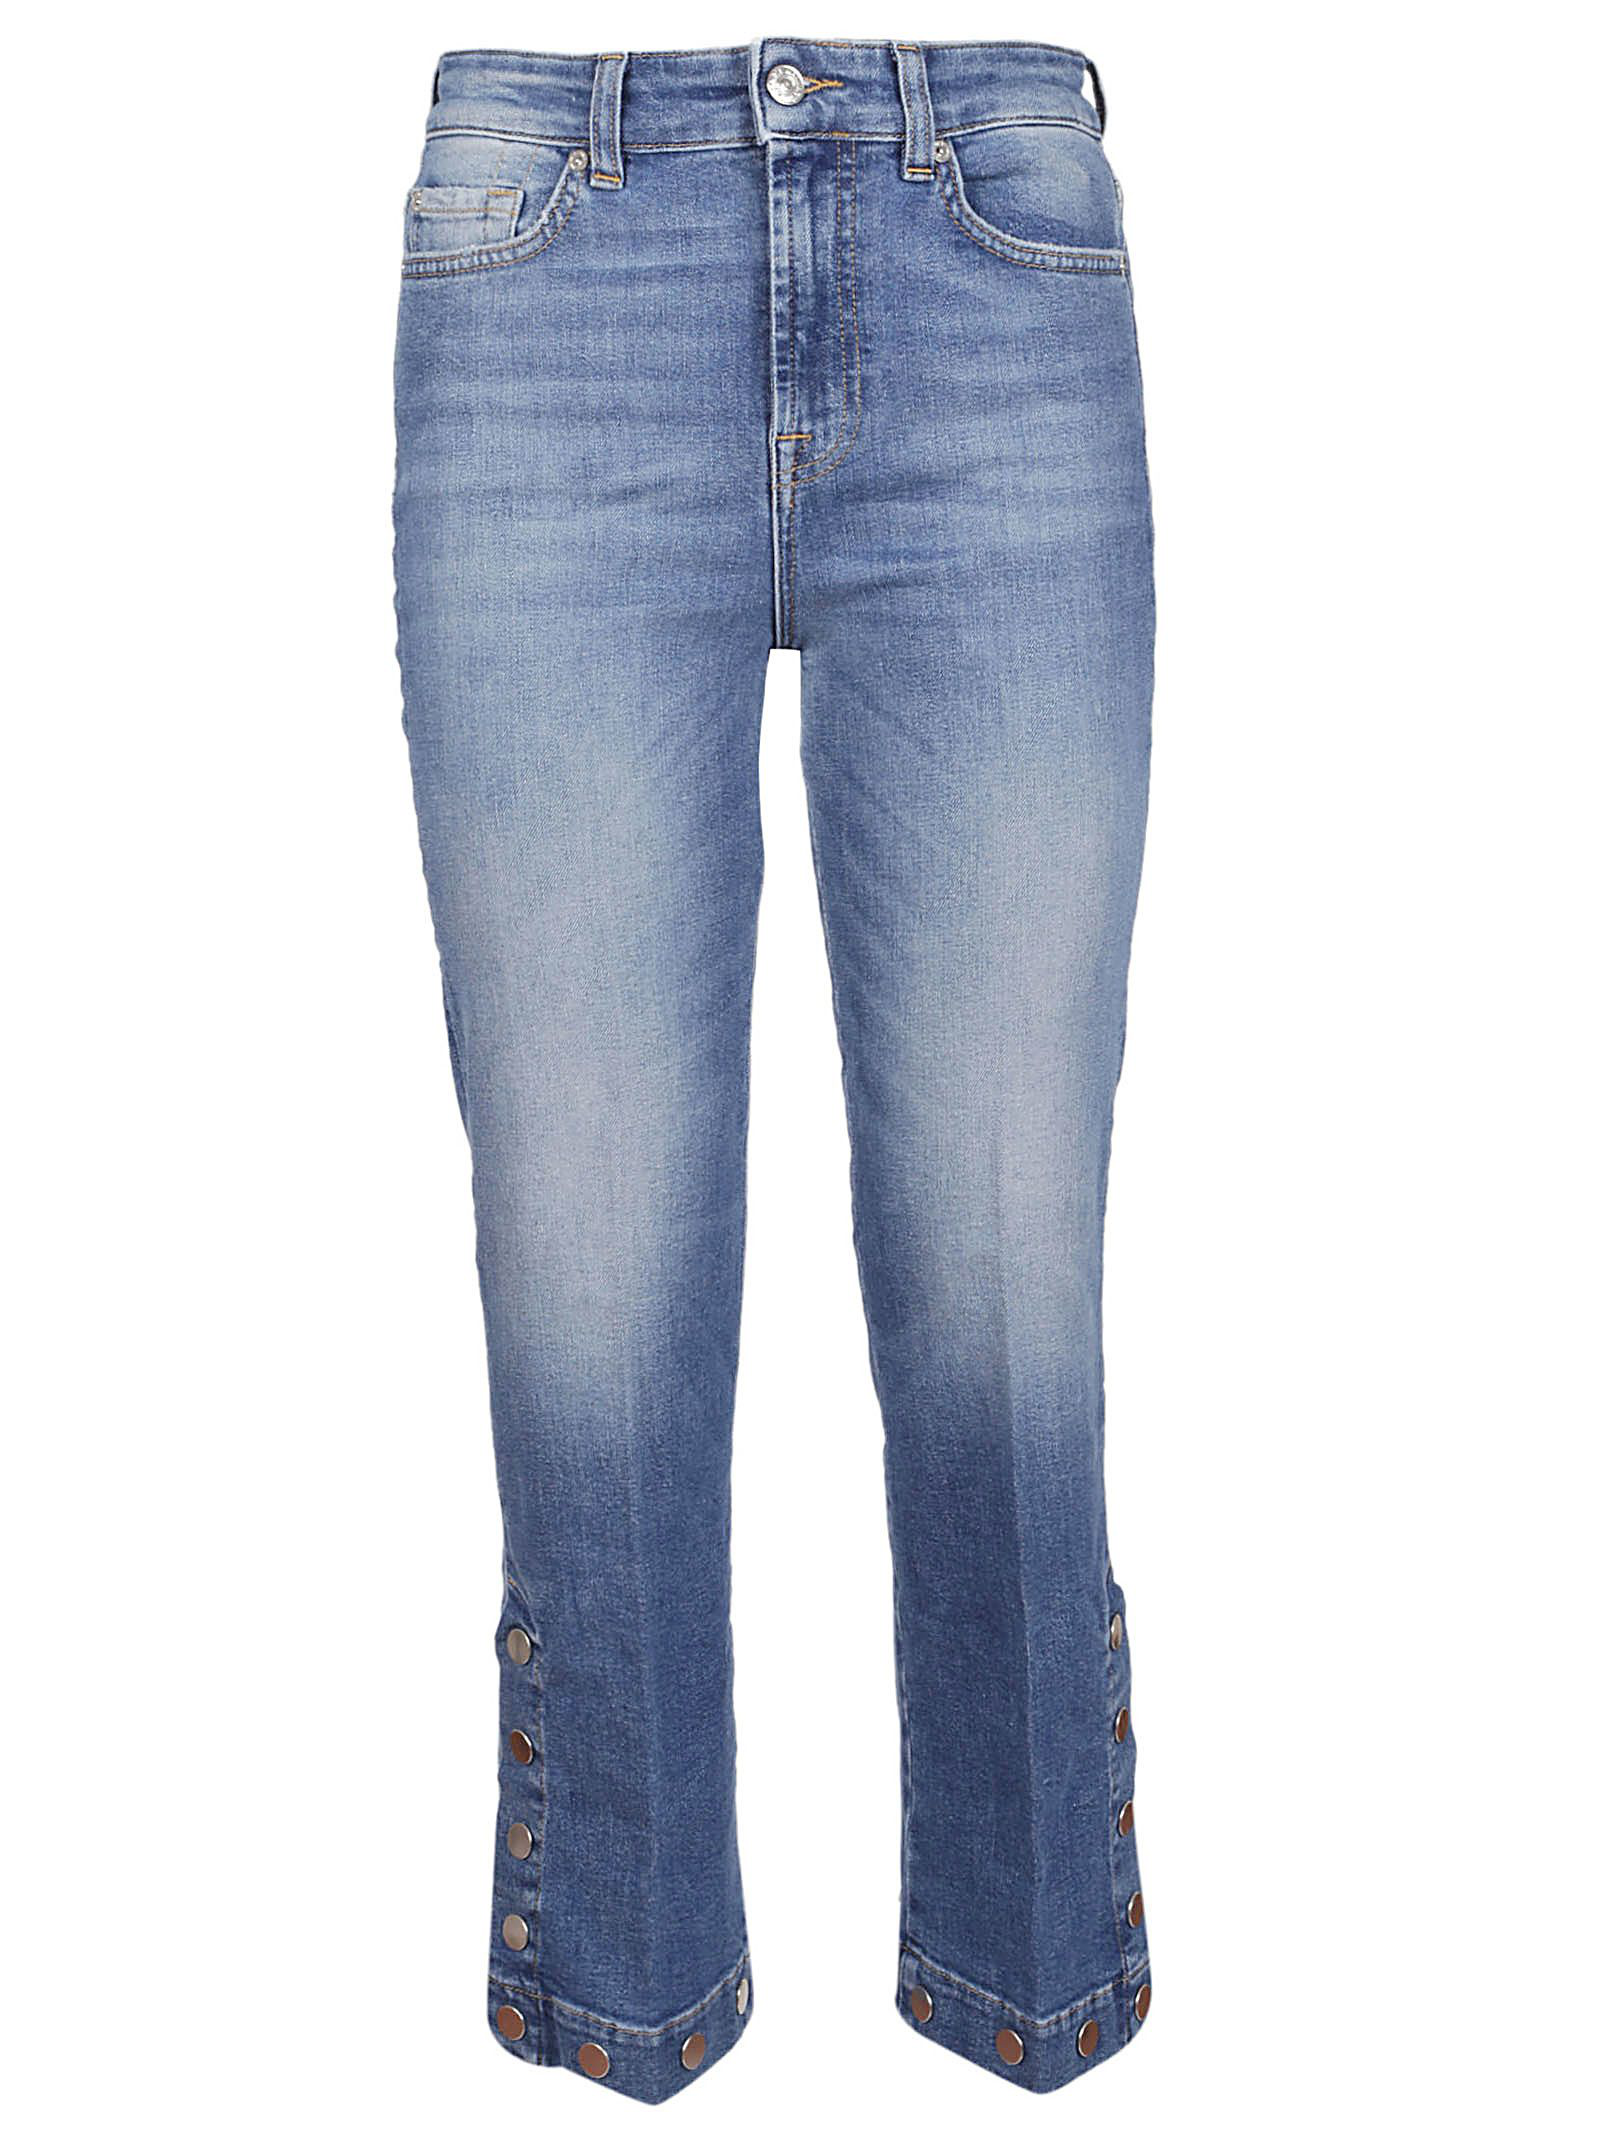 7 For All Mankind Cropped Bootcut Jeans In Fxroberson